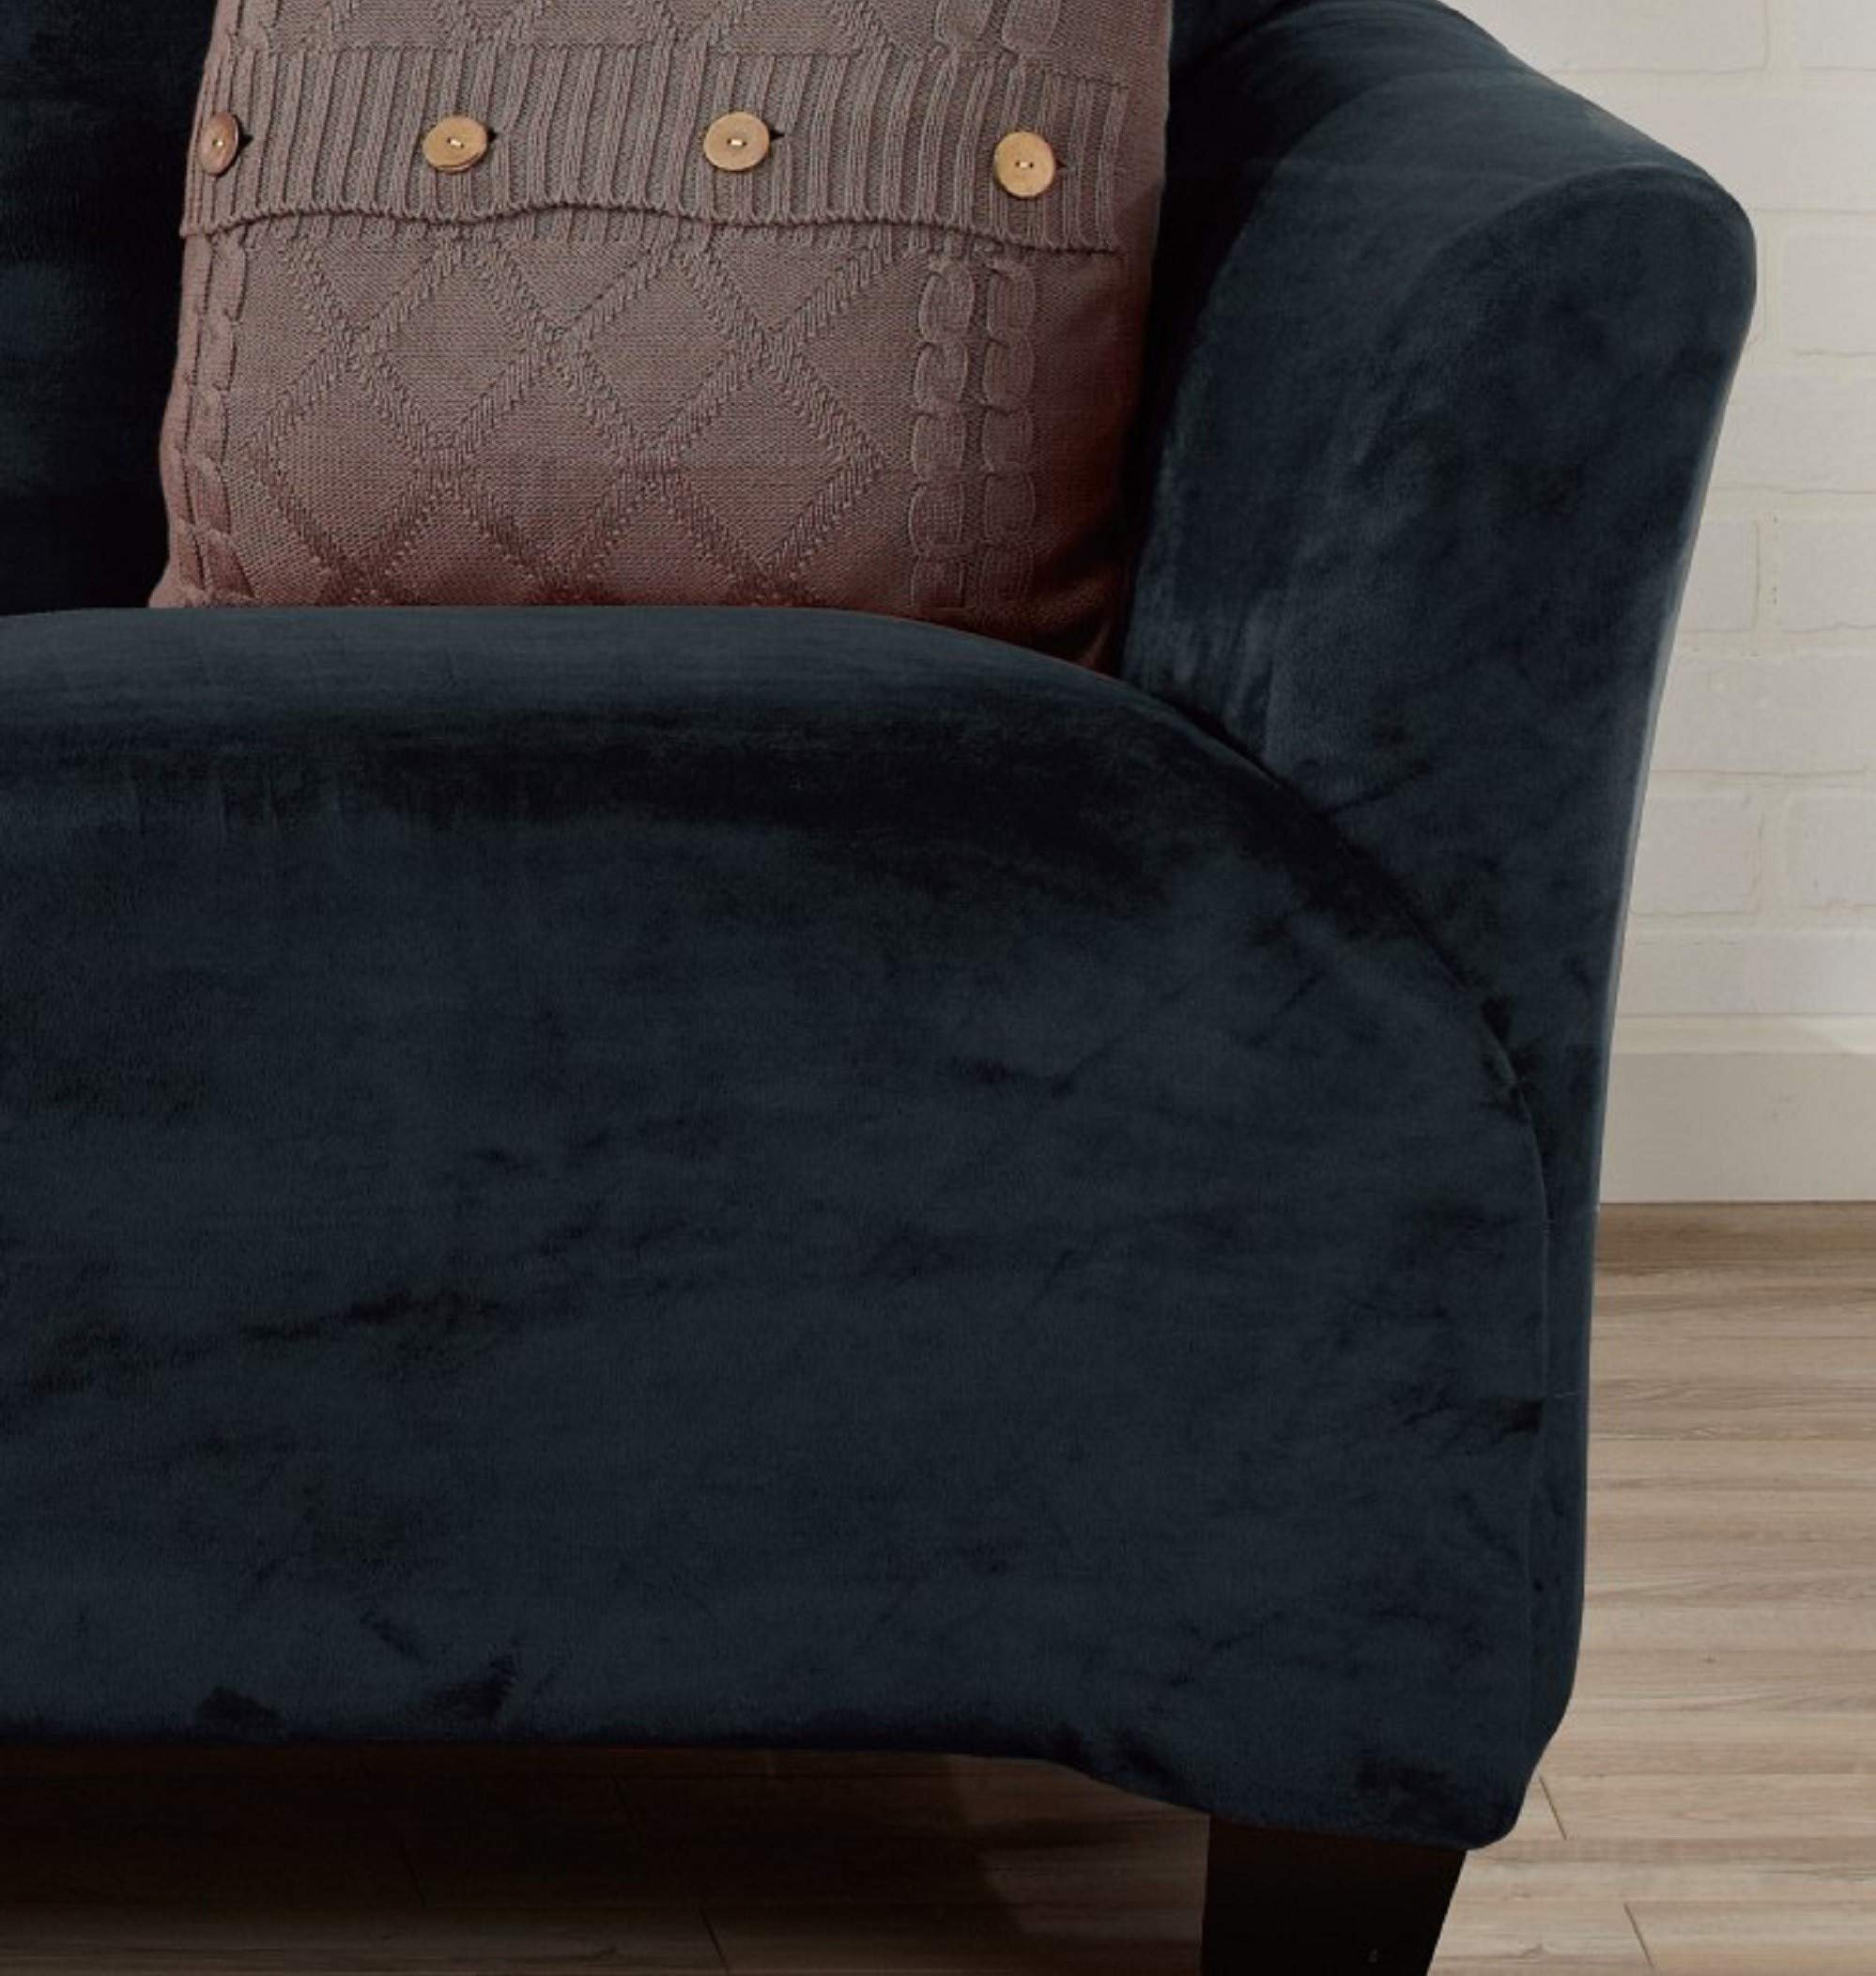 Great Bay Home Form Fit, Slip Resistant, Stylish Furniture Shield/Protector Featuring Velvet Plush Fabric. Gale Collection Strapless Slipcover Brand.